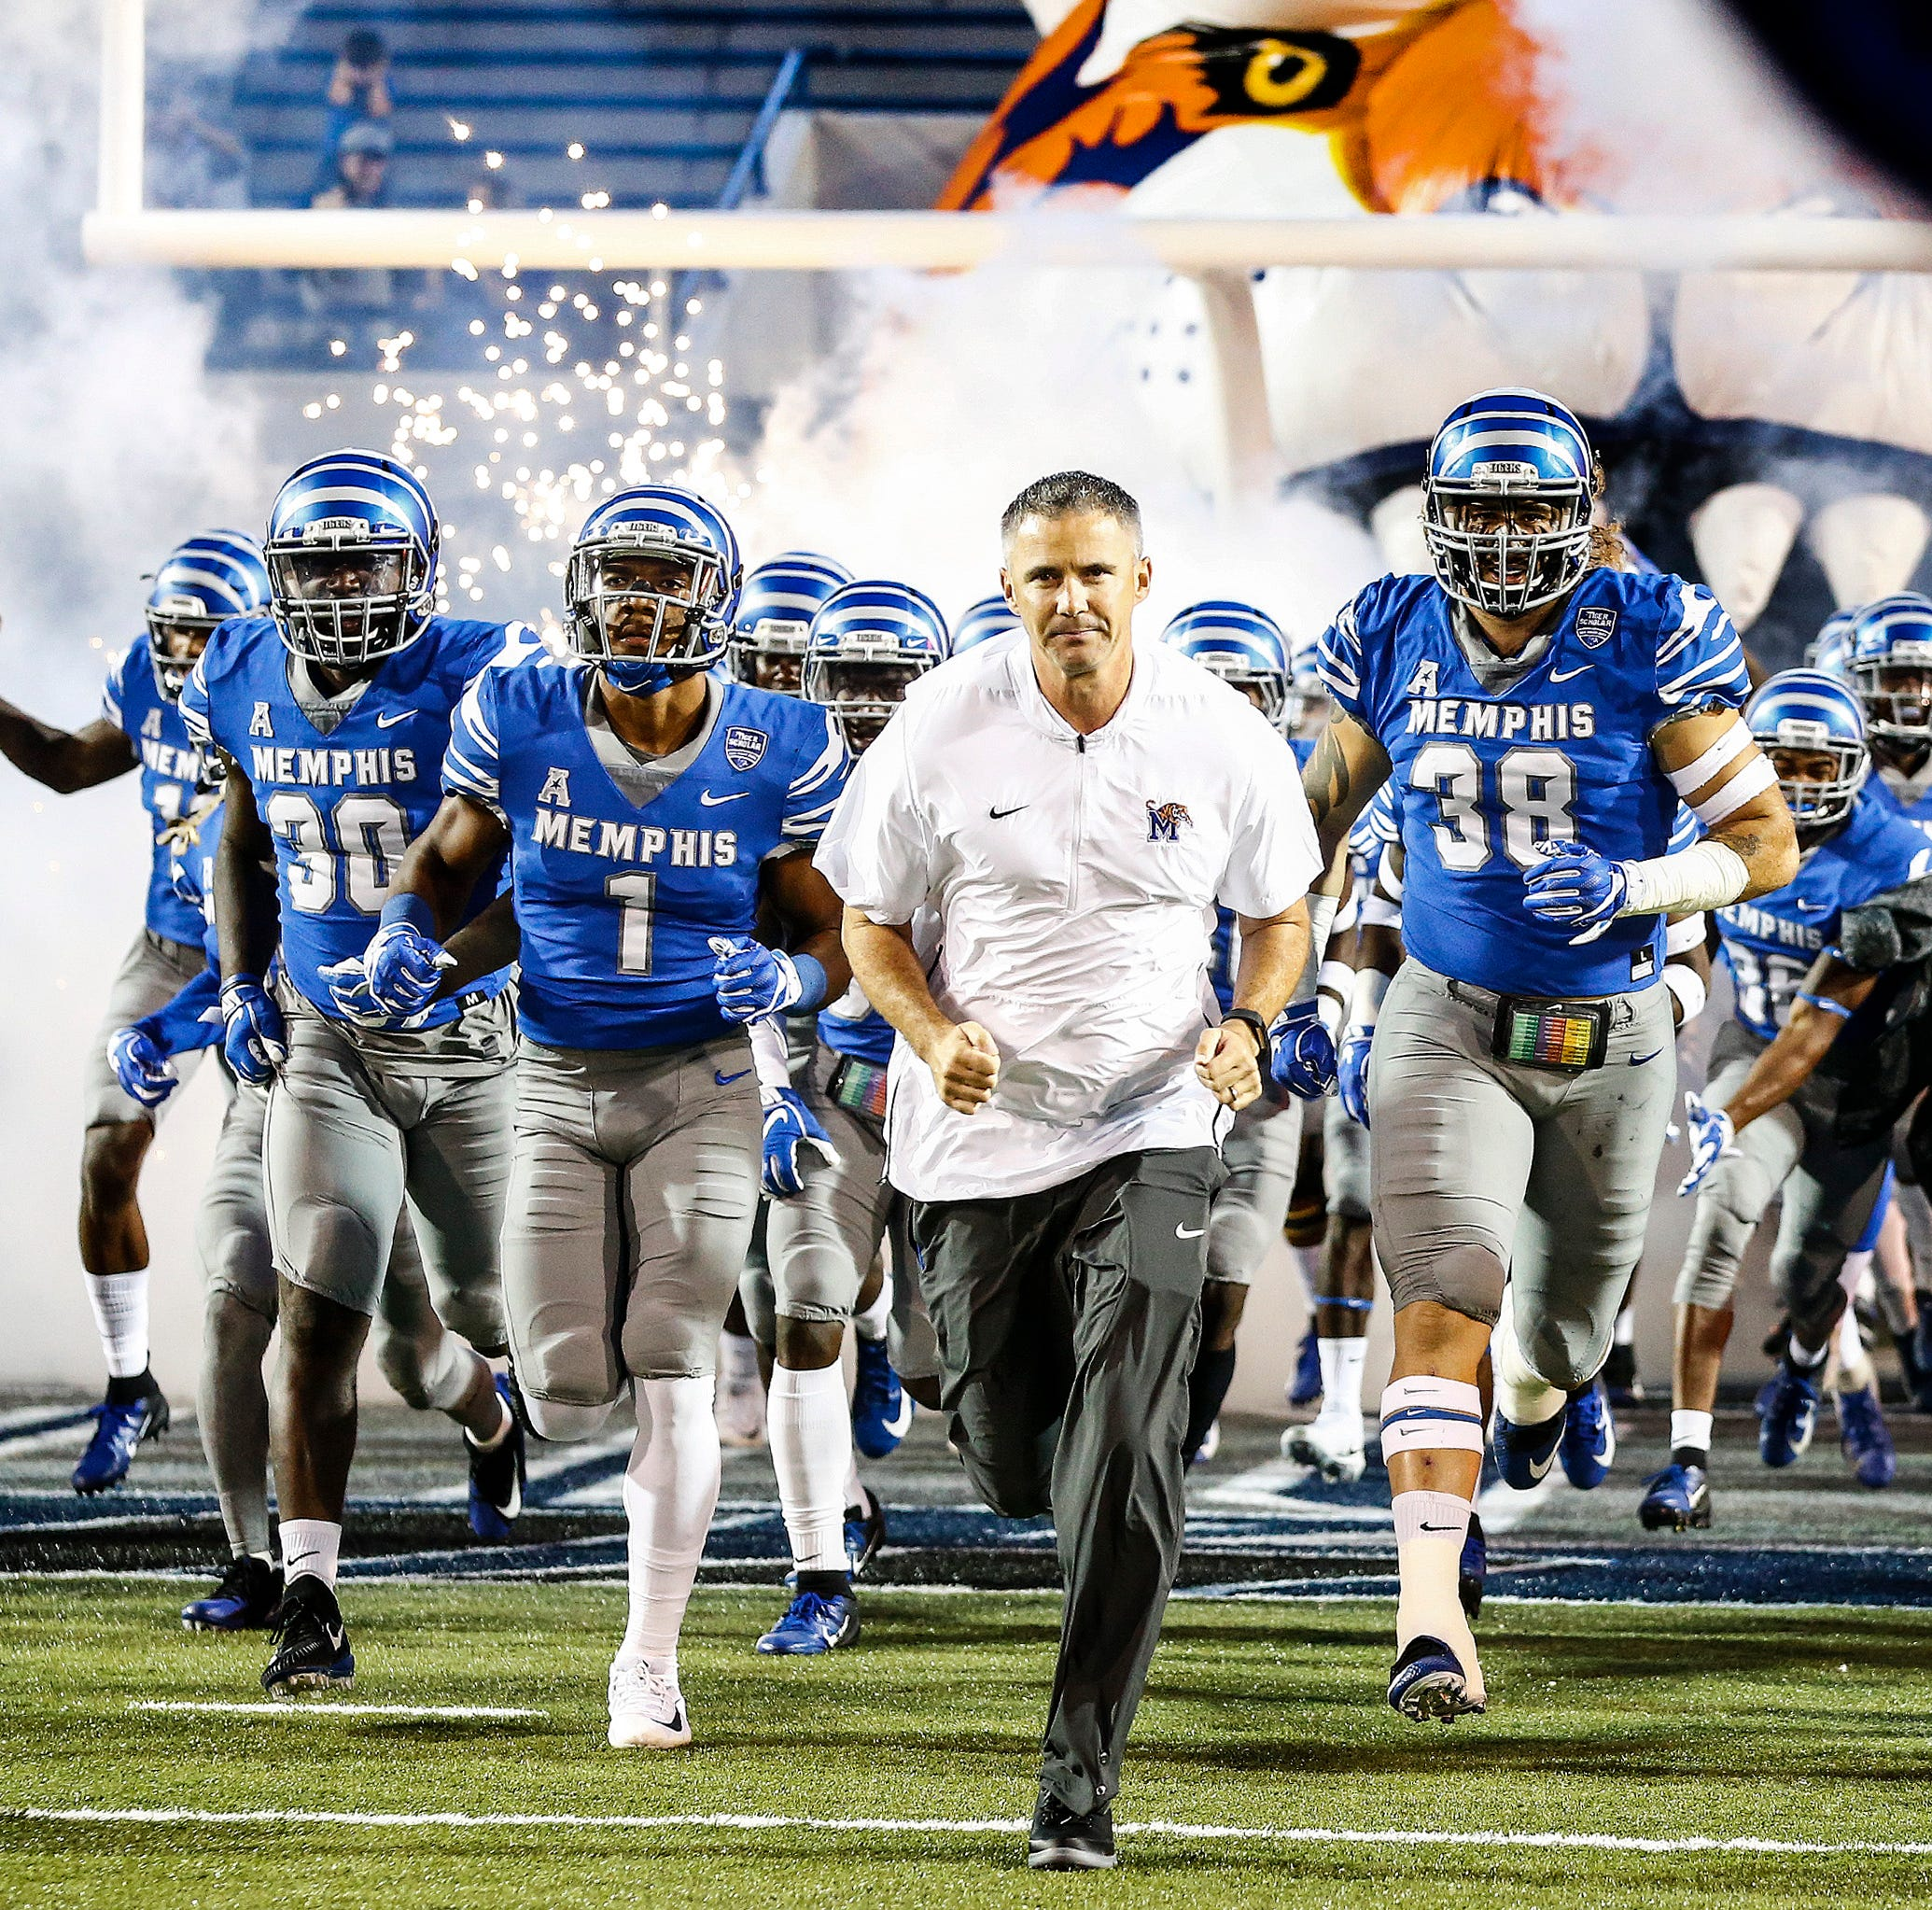 Memphis vs Tulane: TV, radio, streaming, odds, kickoff information